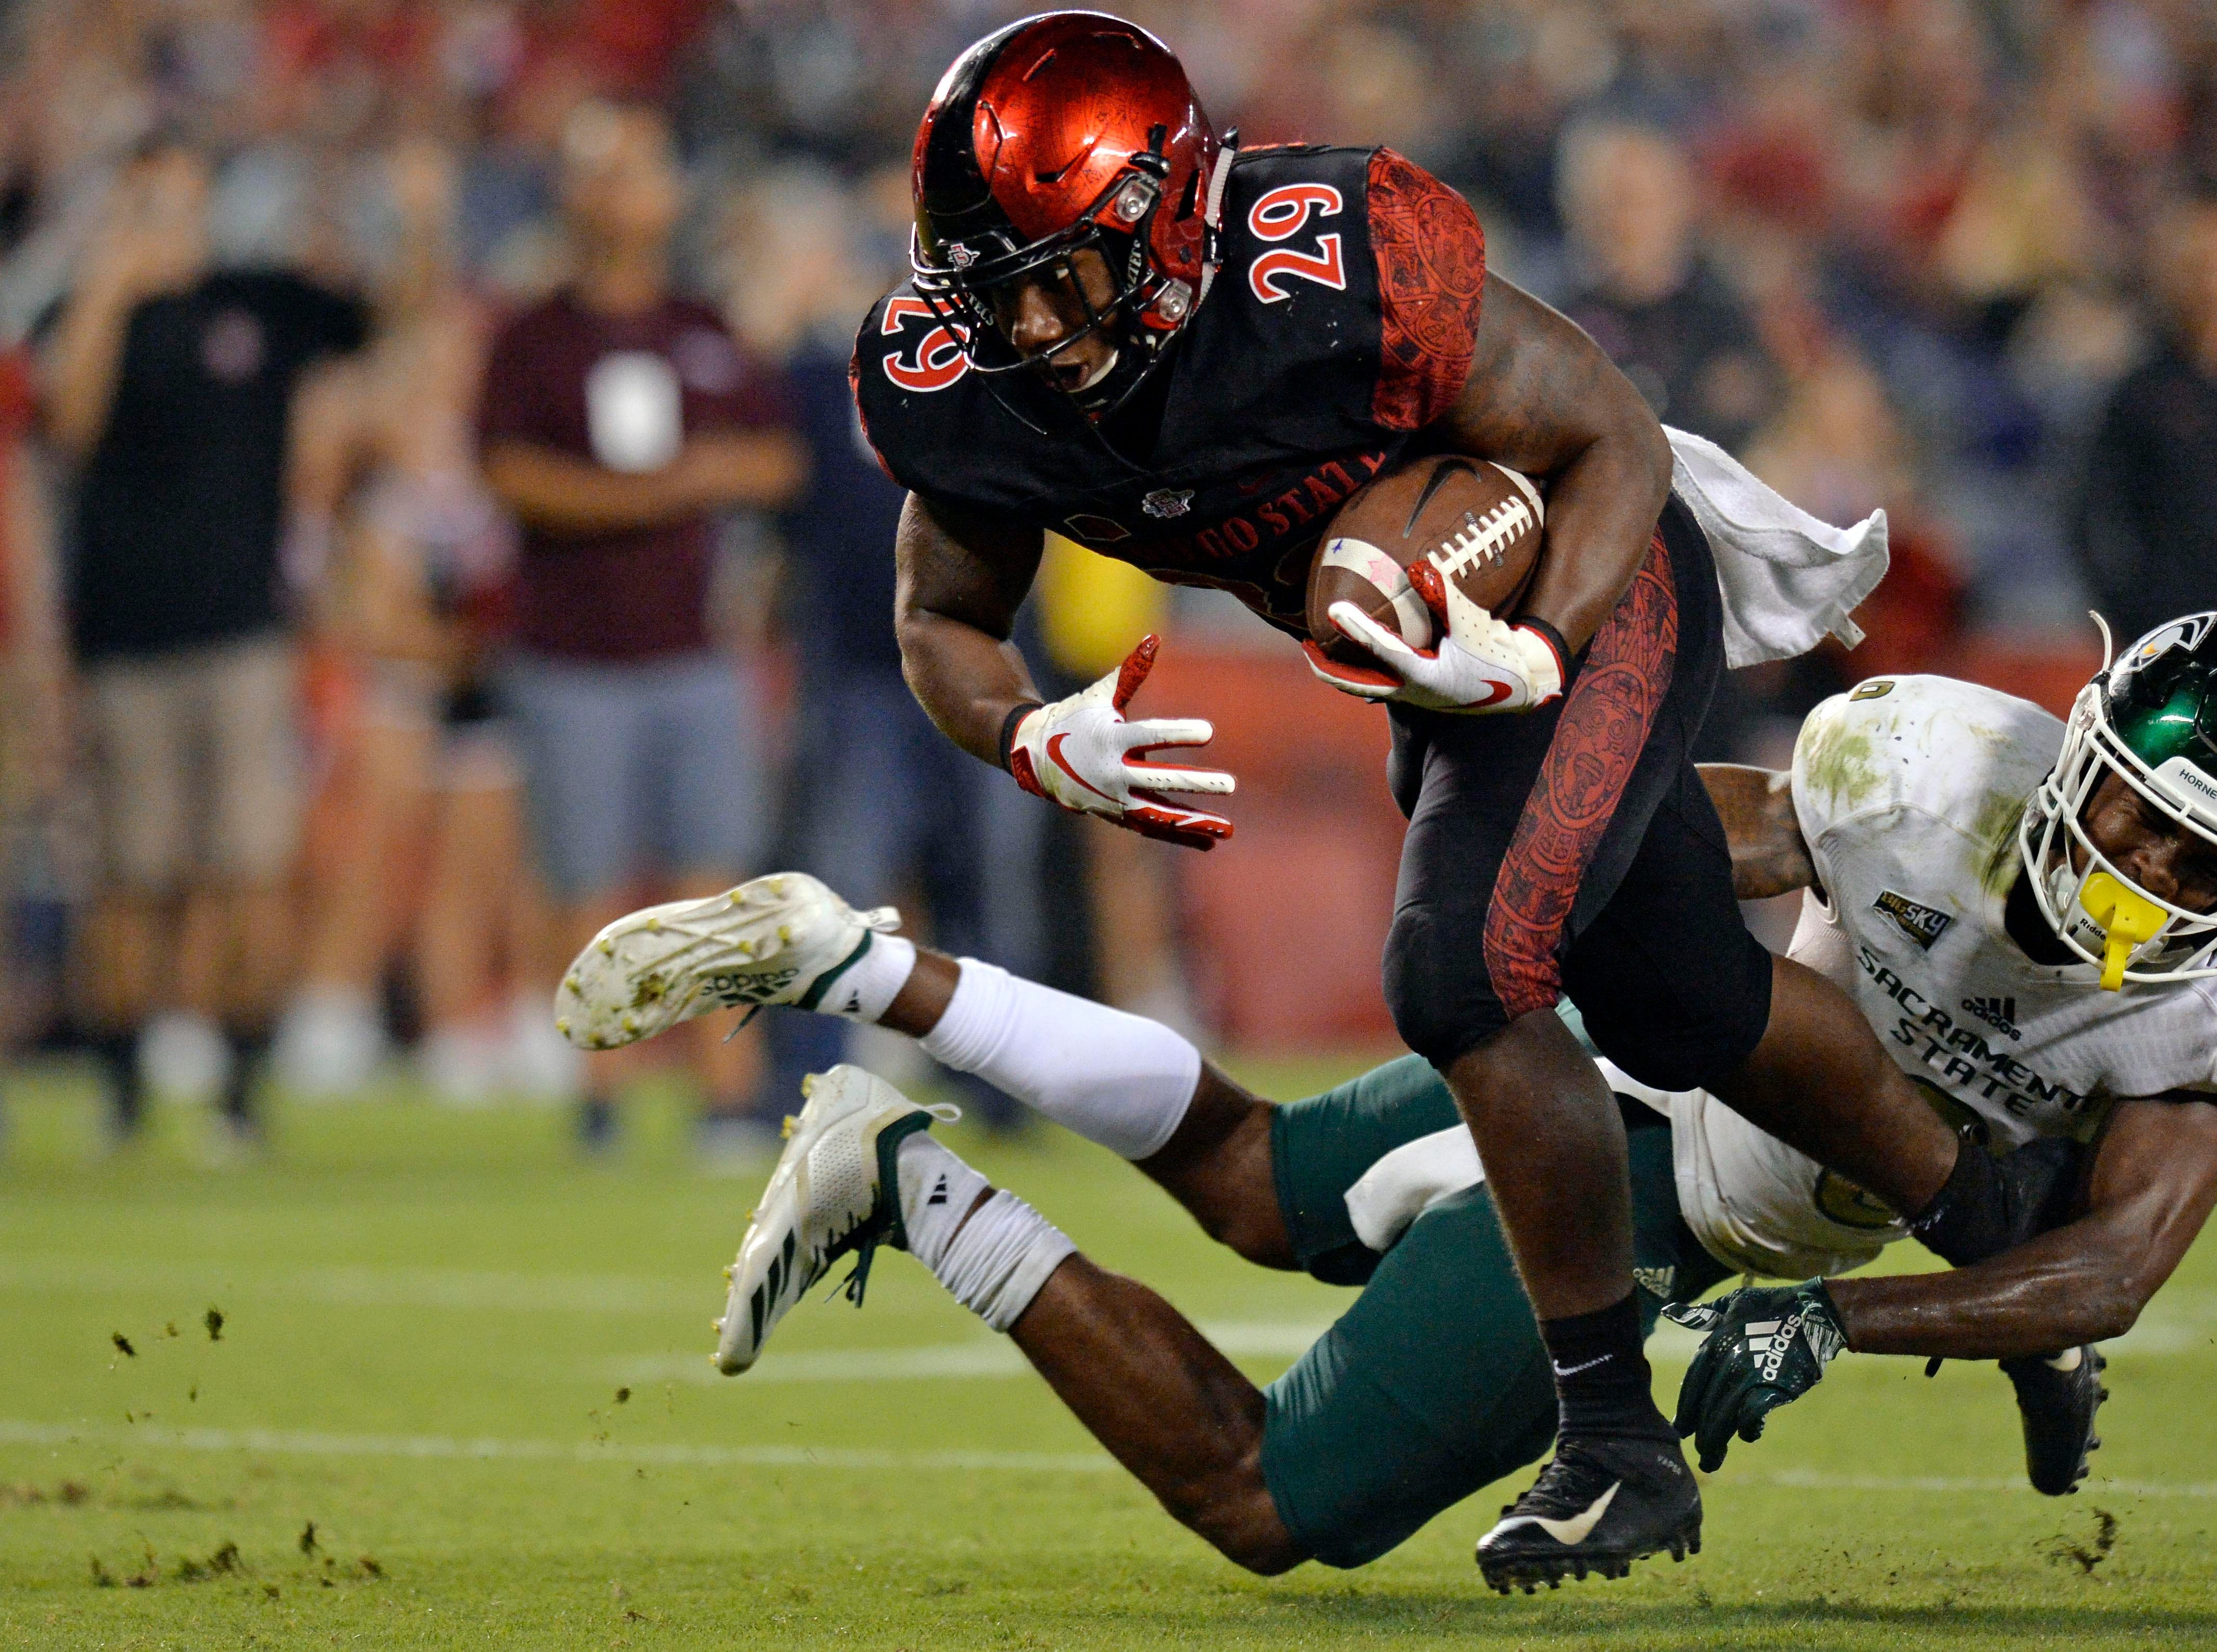 San Diego State Aztecs running back Juwan Washington (29) scores a fourth-quarter touchdown as Sacramento State Hornets defensive back Caelan Barnes (8) defends at SDCCU Stadium.